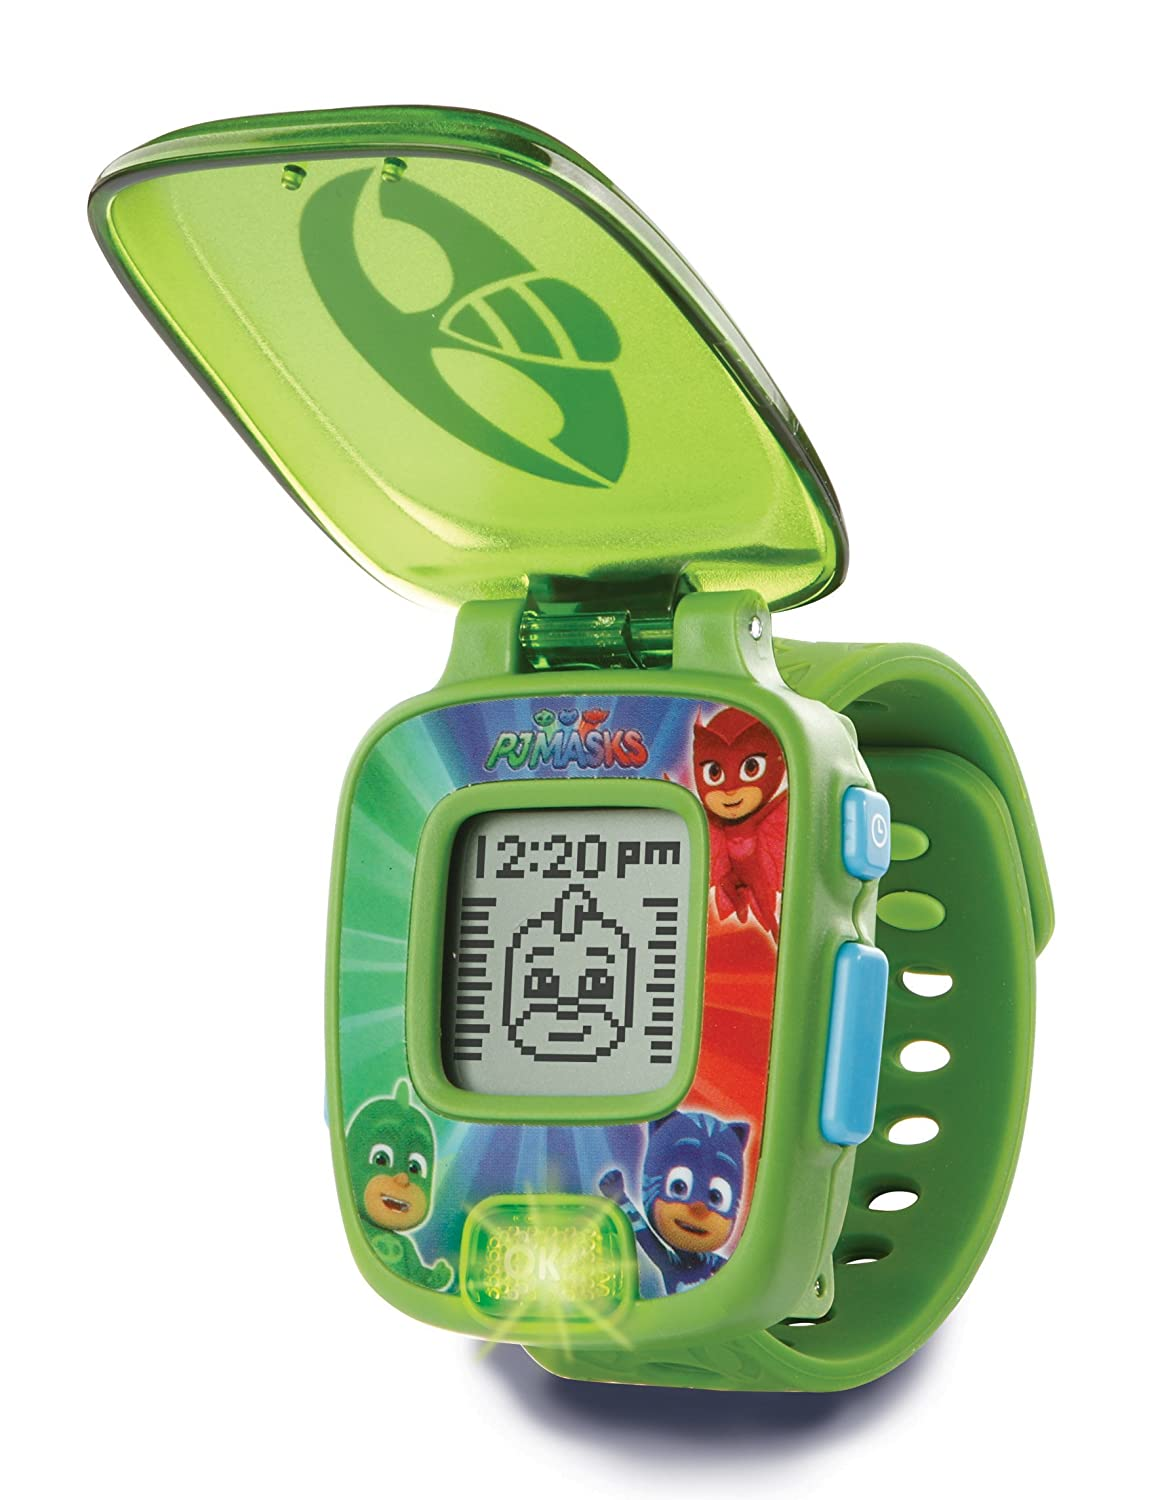 VTech 175883 Pyjamasques - Montre interactive Gluglu (langue: anglais): Amazon.fr: Jeux et Jouets